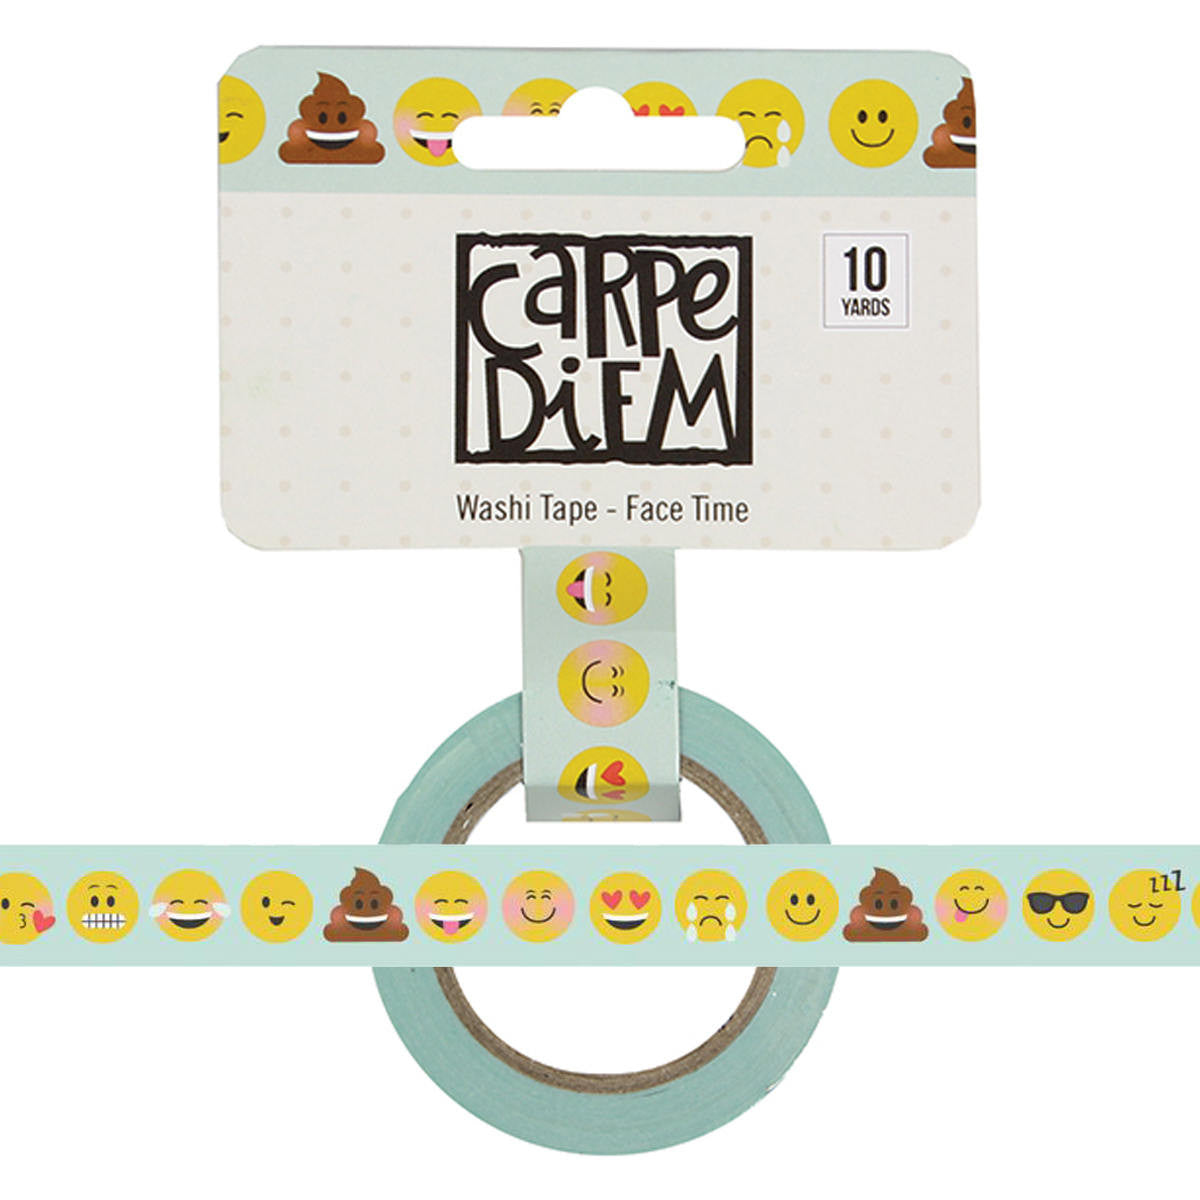 Emoji Love FACE TIME Carpe Diem Washi Tape, 15mm x 10 yards